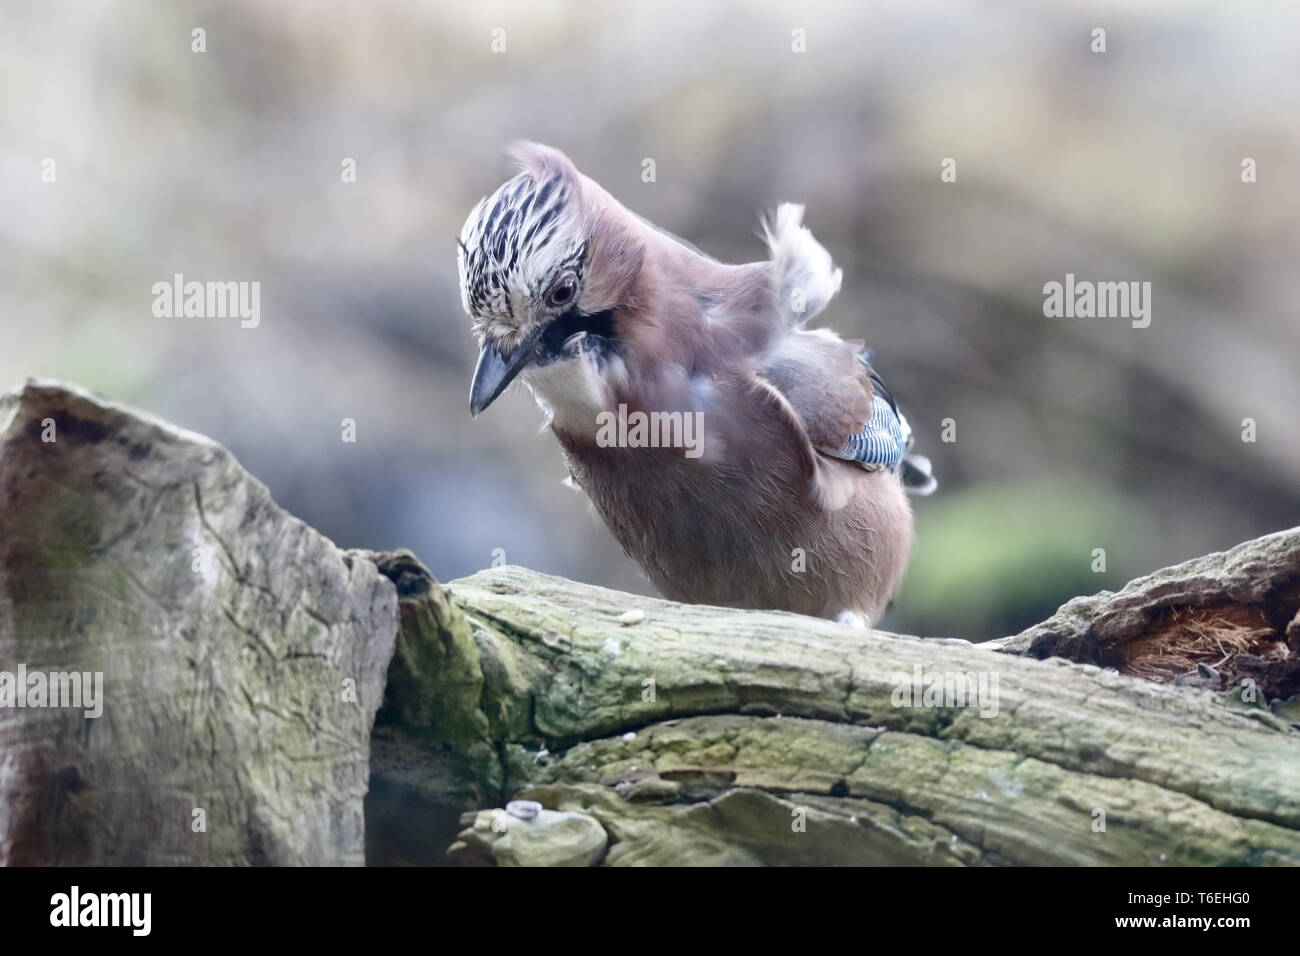 Jay in search of food - Stock Image